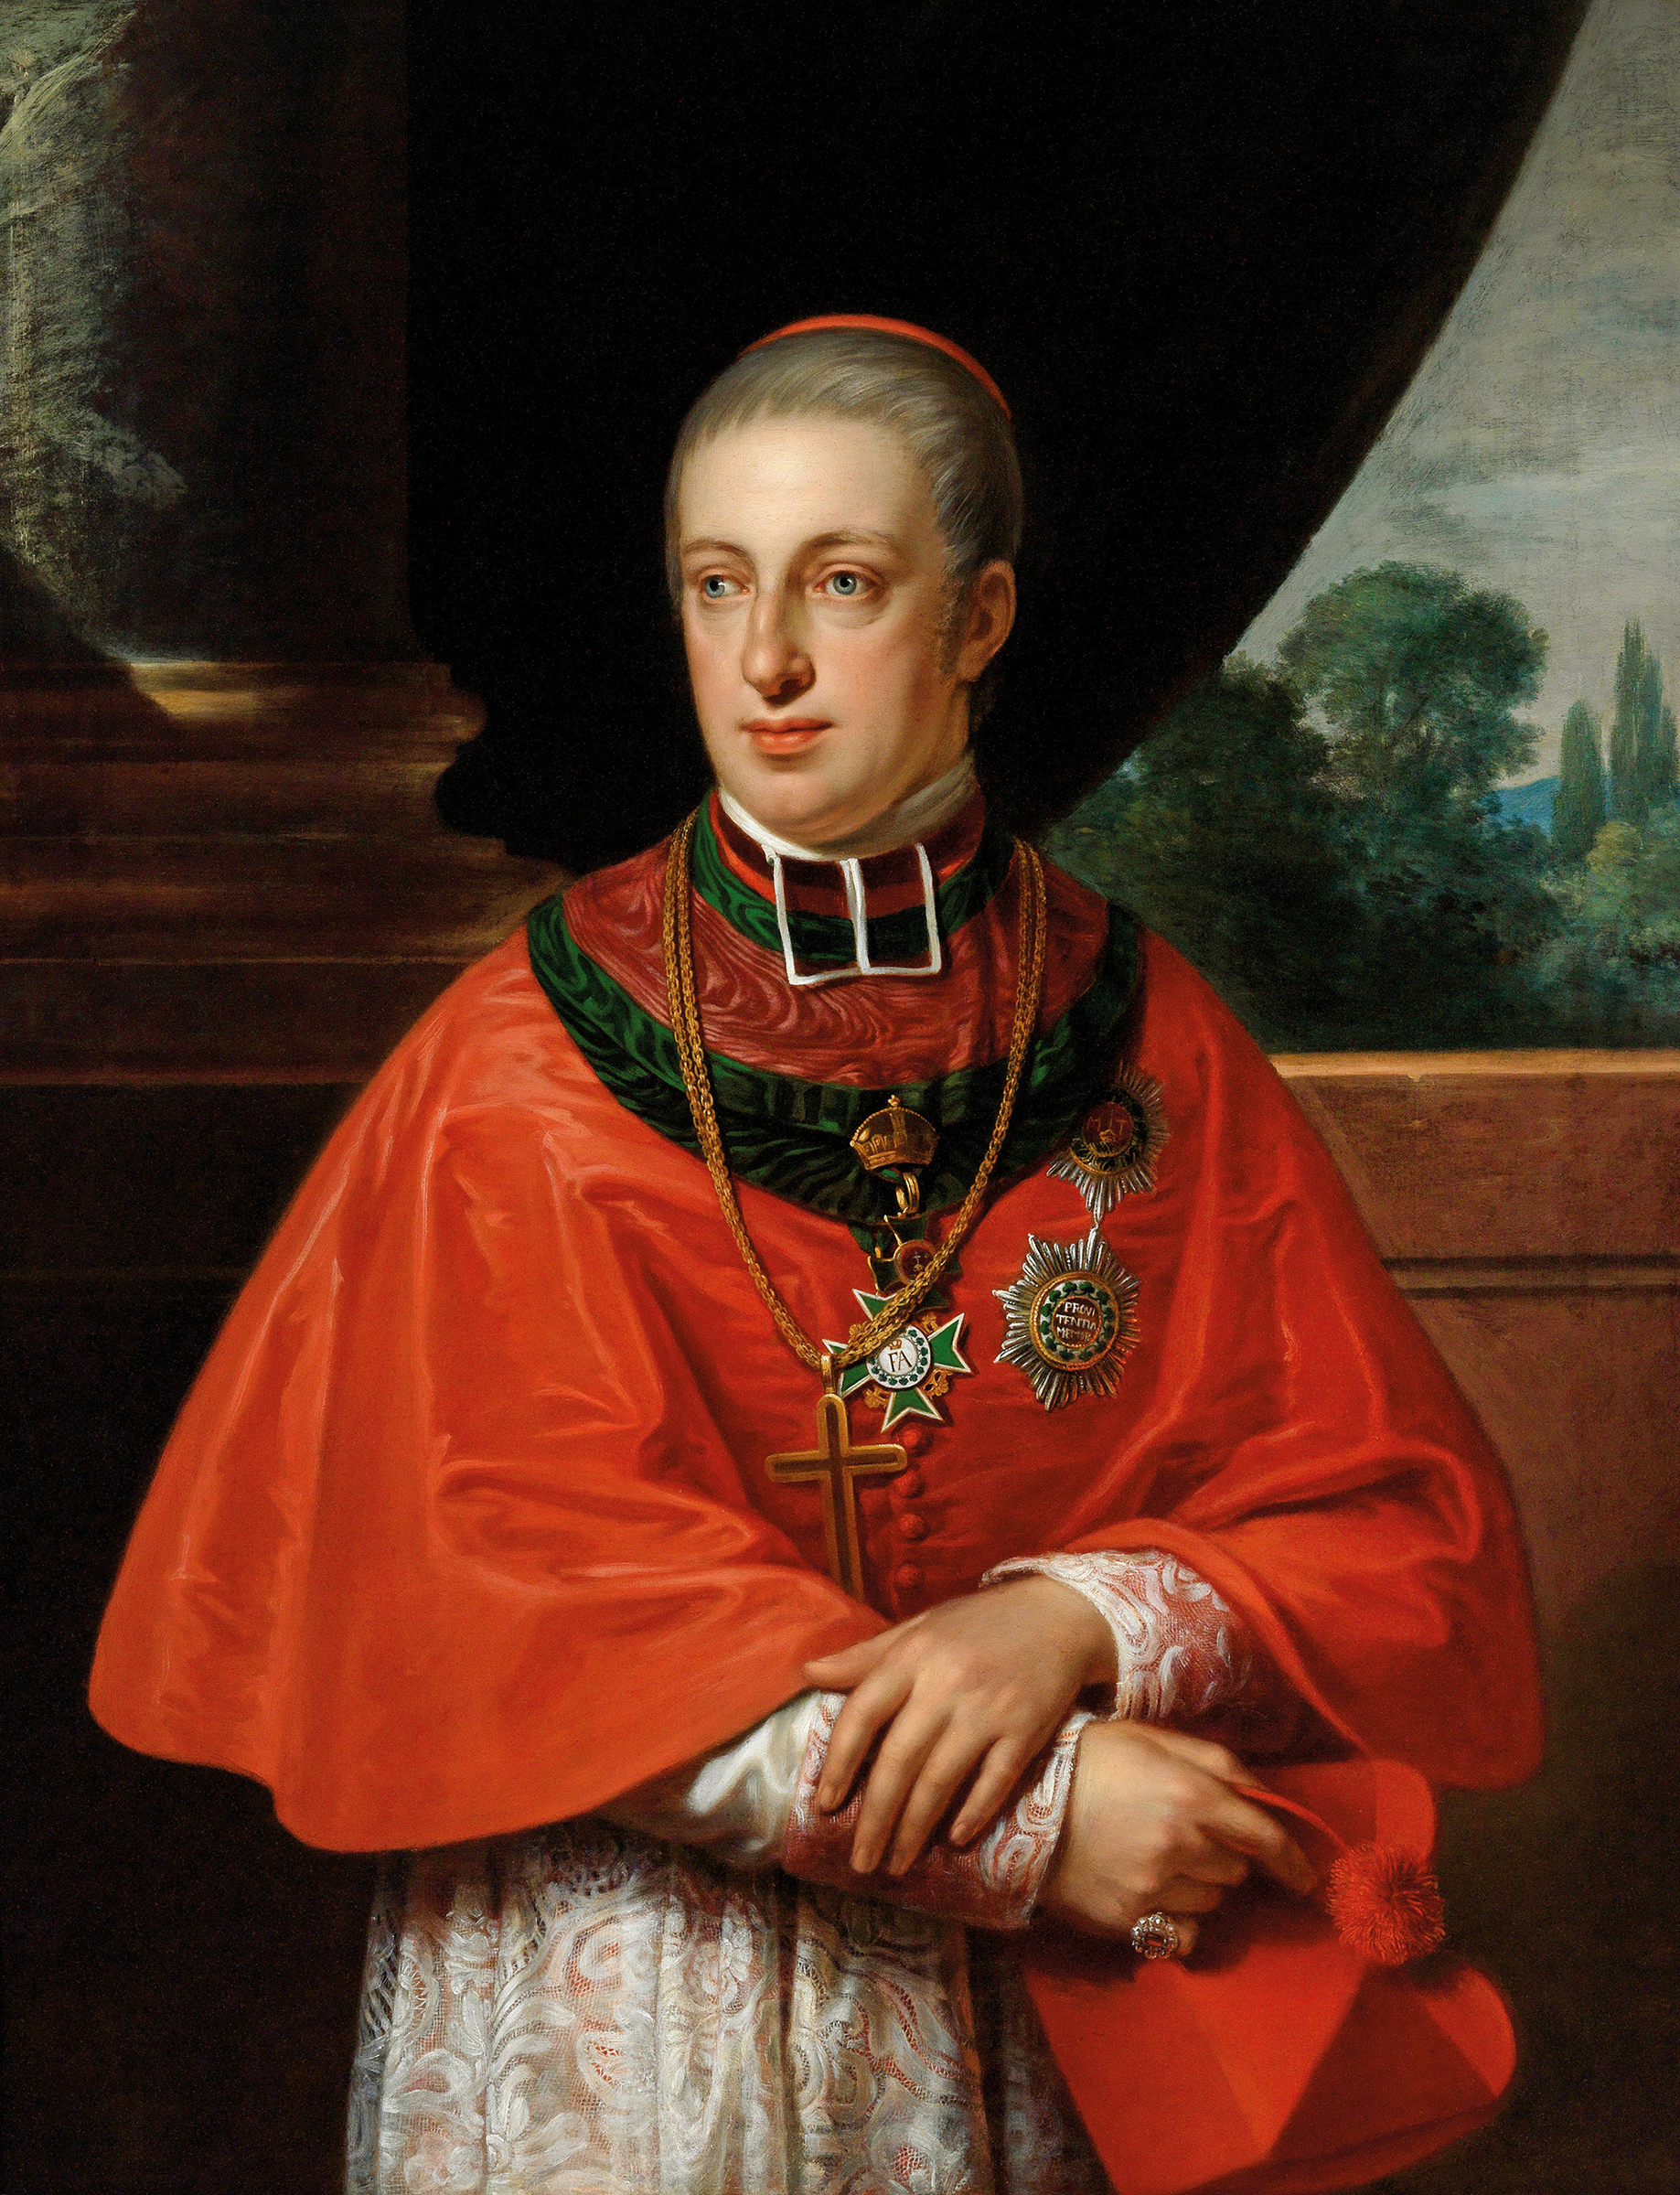 Portrait of Rudolf of Austria (1788-1831), Archduke; Archbishop of Olomouc and Cardinal of the Catholic Church (1819-1831) | Portraits of Kings